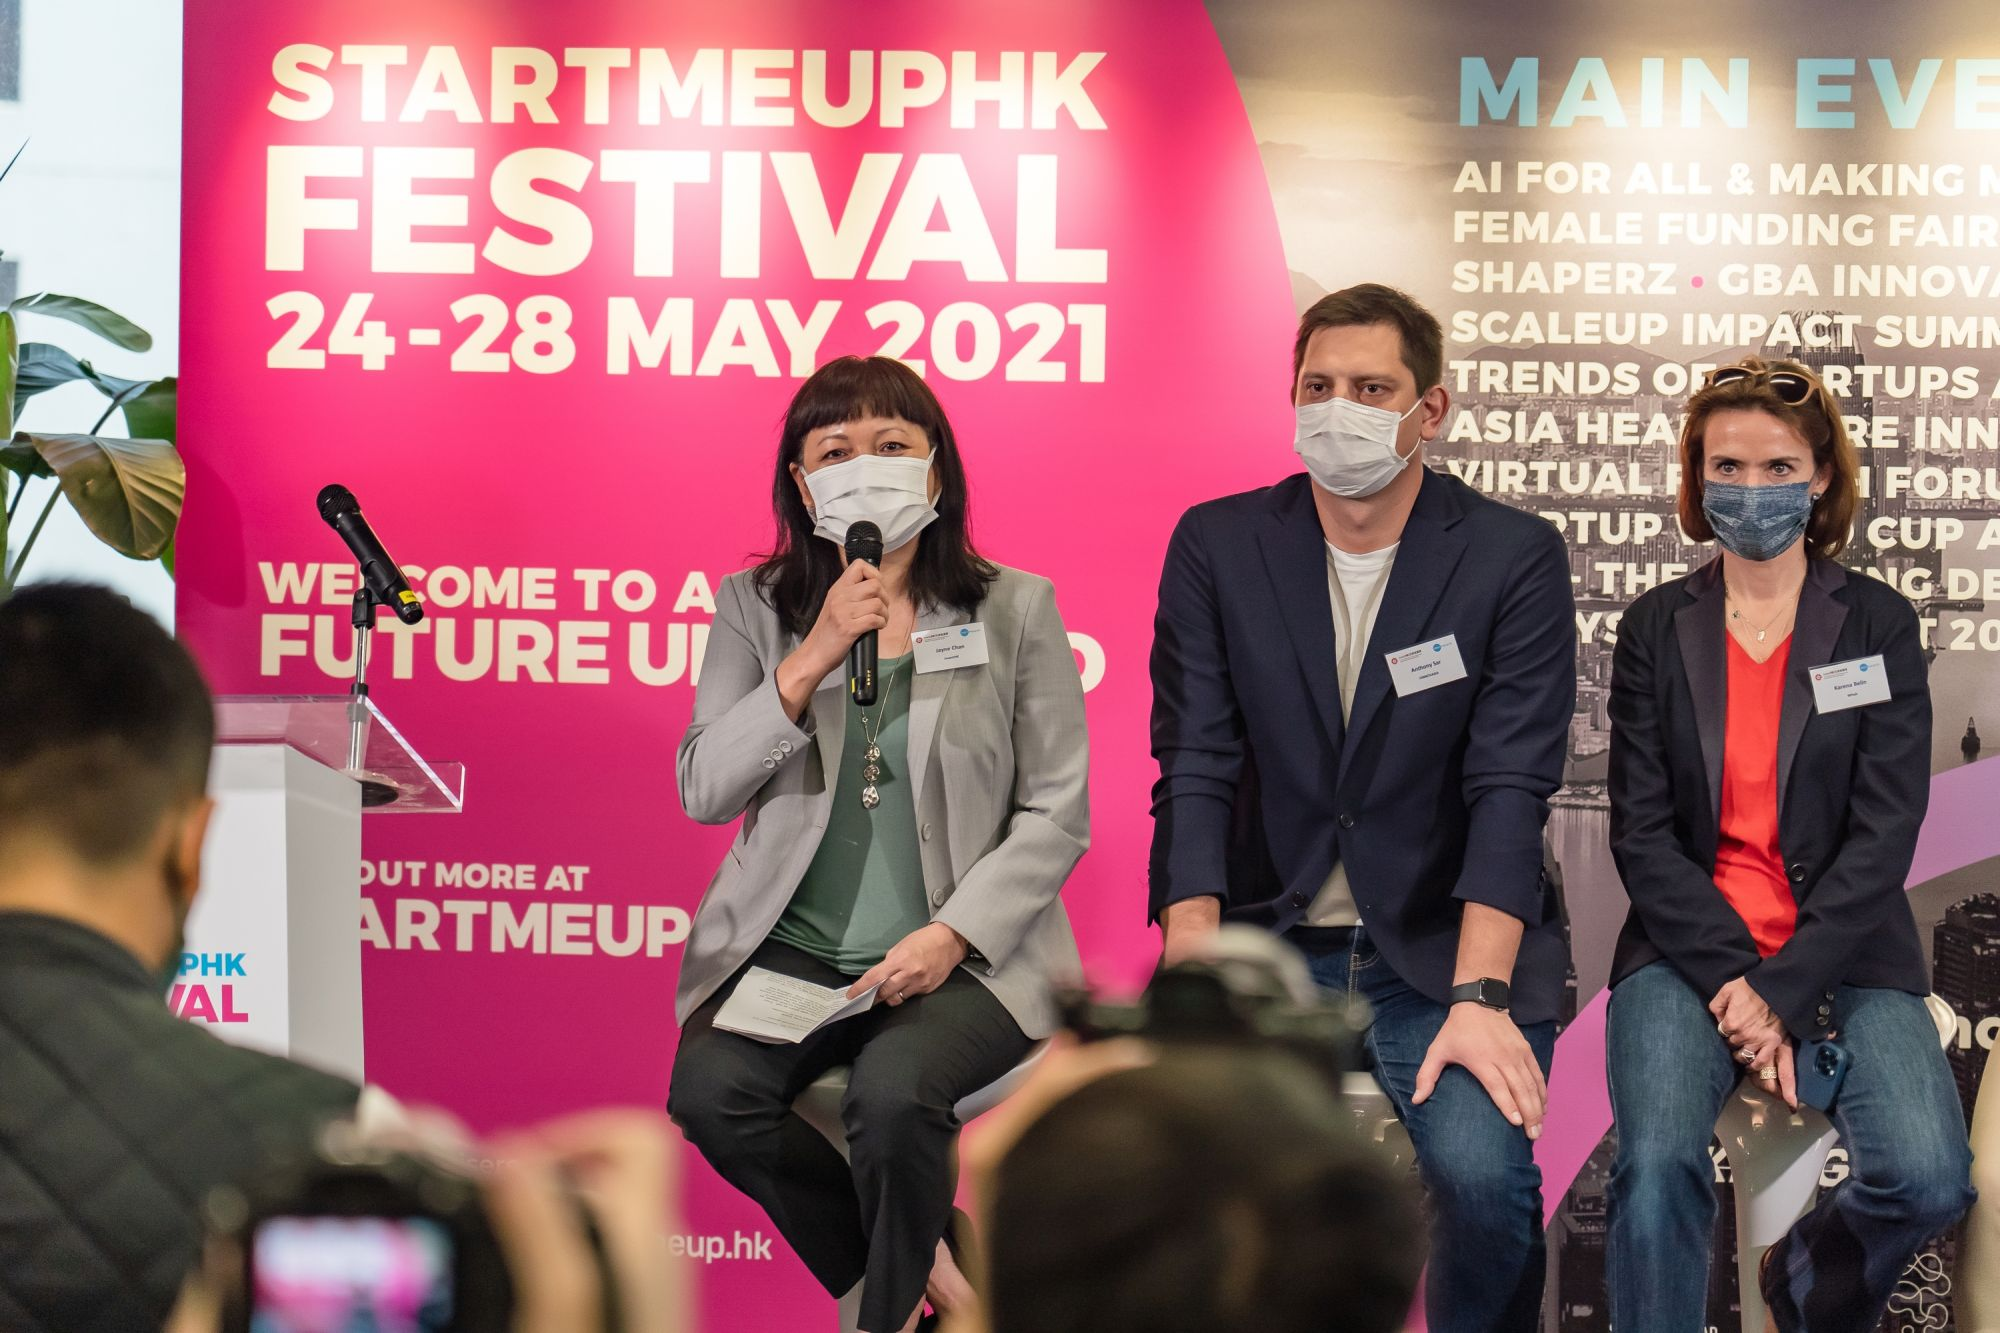 Here's Everything You Need To Know About StartmeupHK Festival 2021